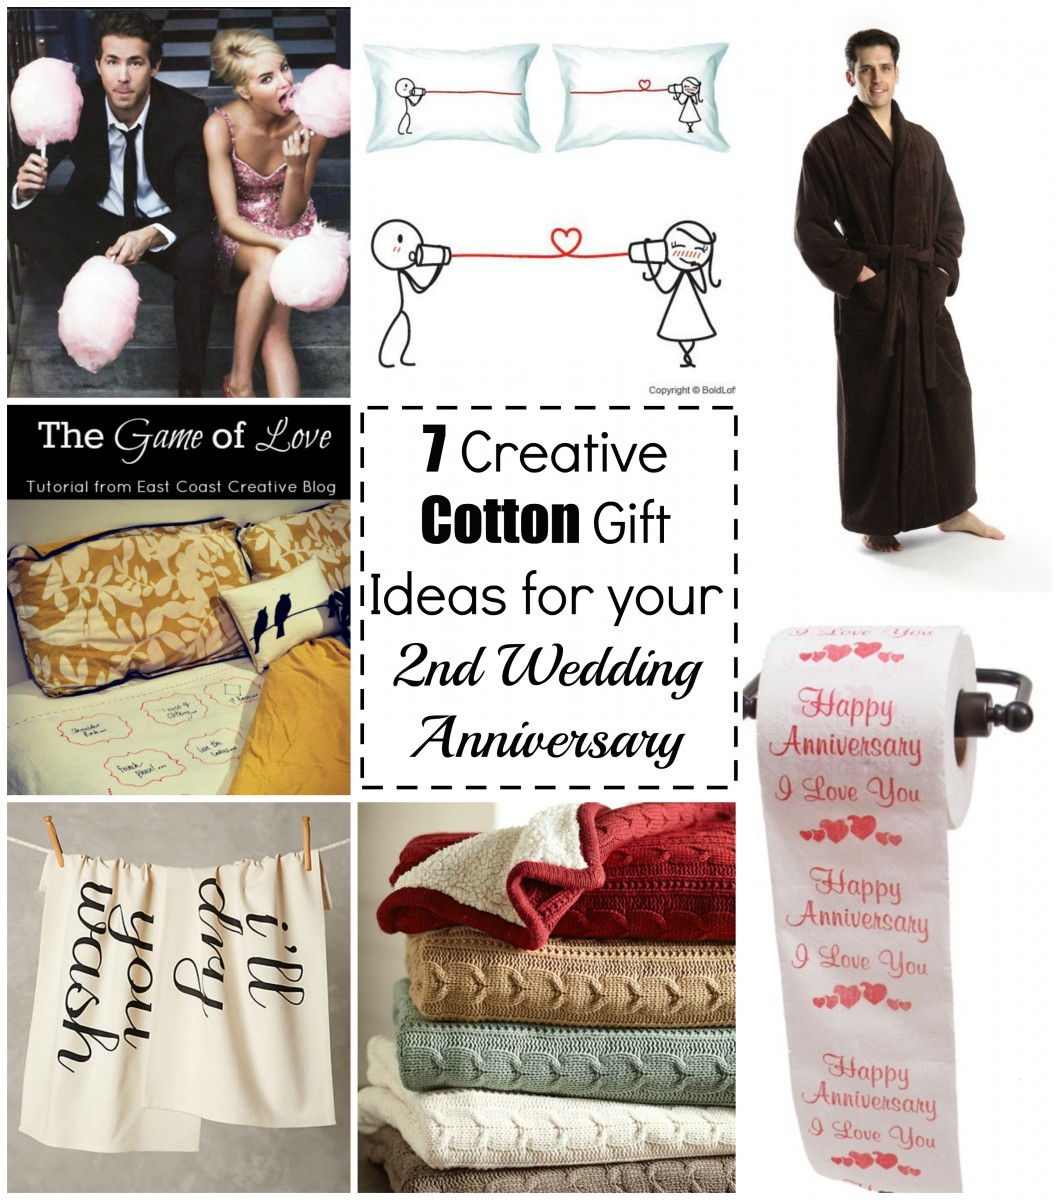 2 Year Wedding Anniversary Gift Ideas Cotton : creative cotton gift ideas for your 2nd wedding anniversary her ...